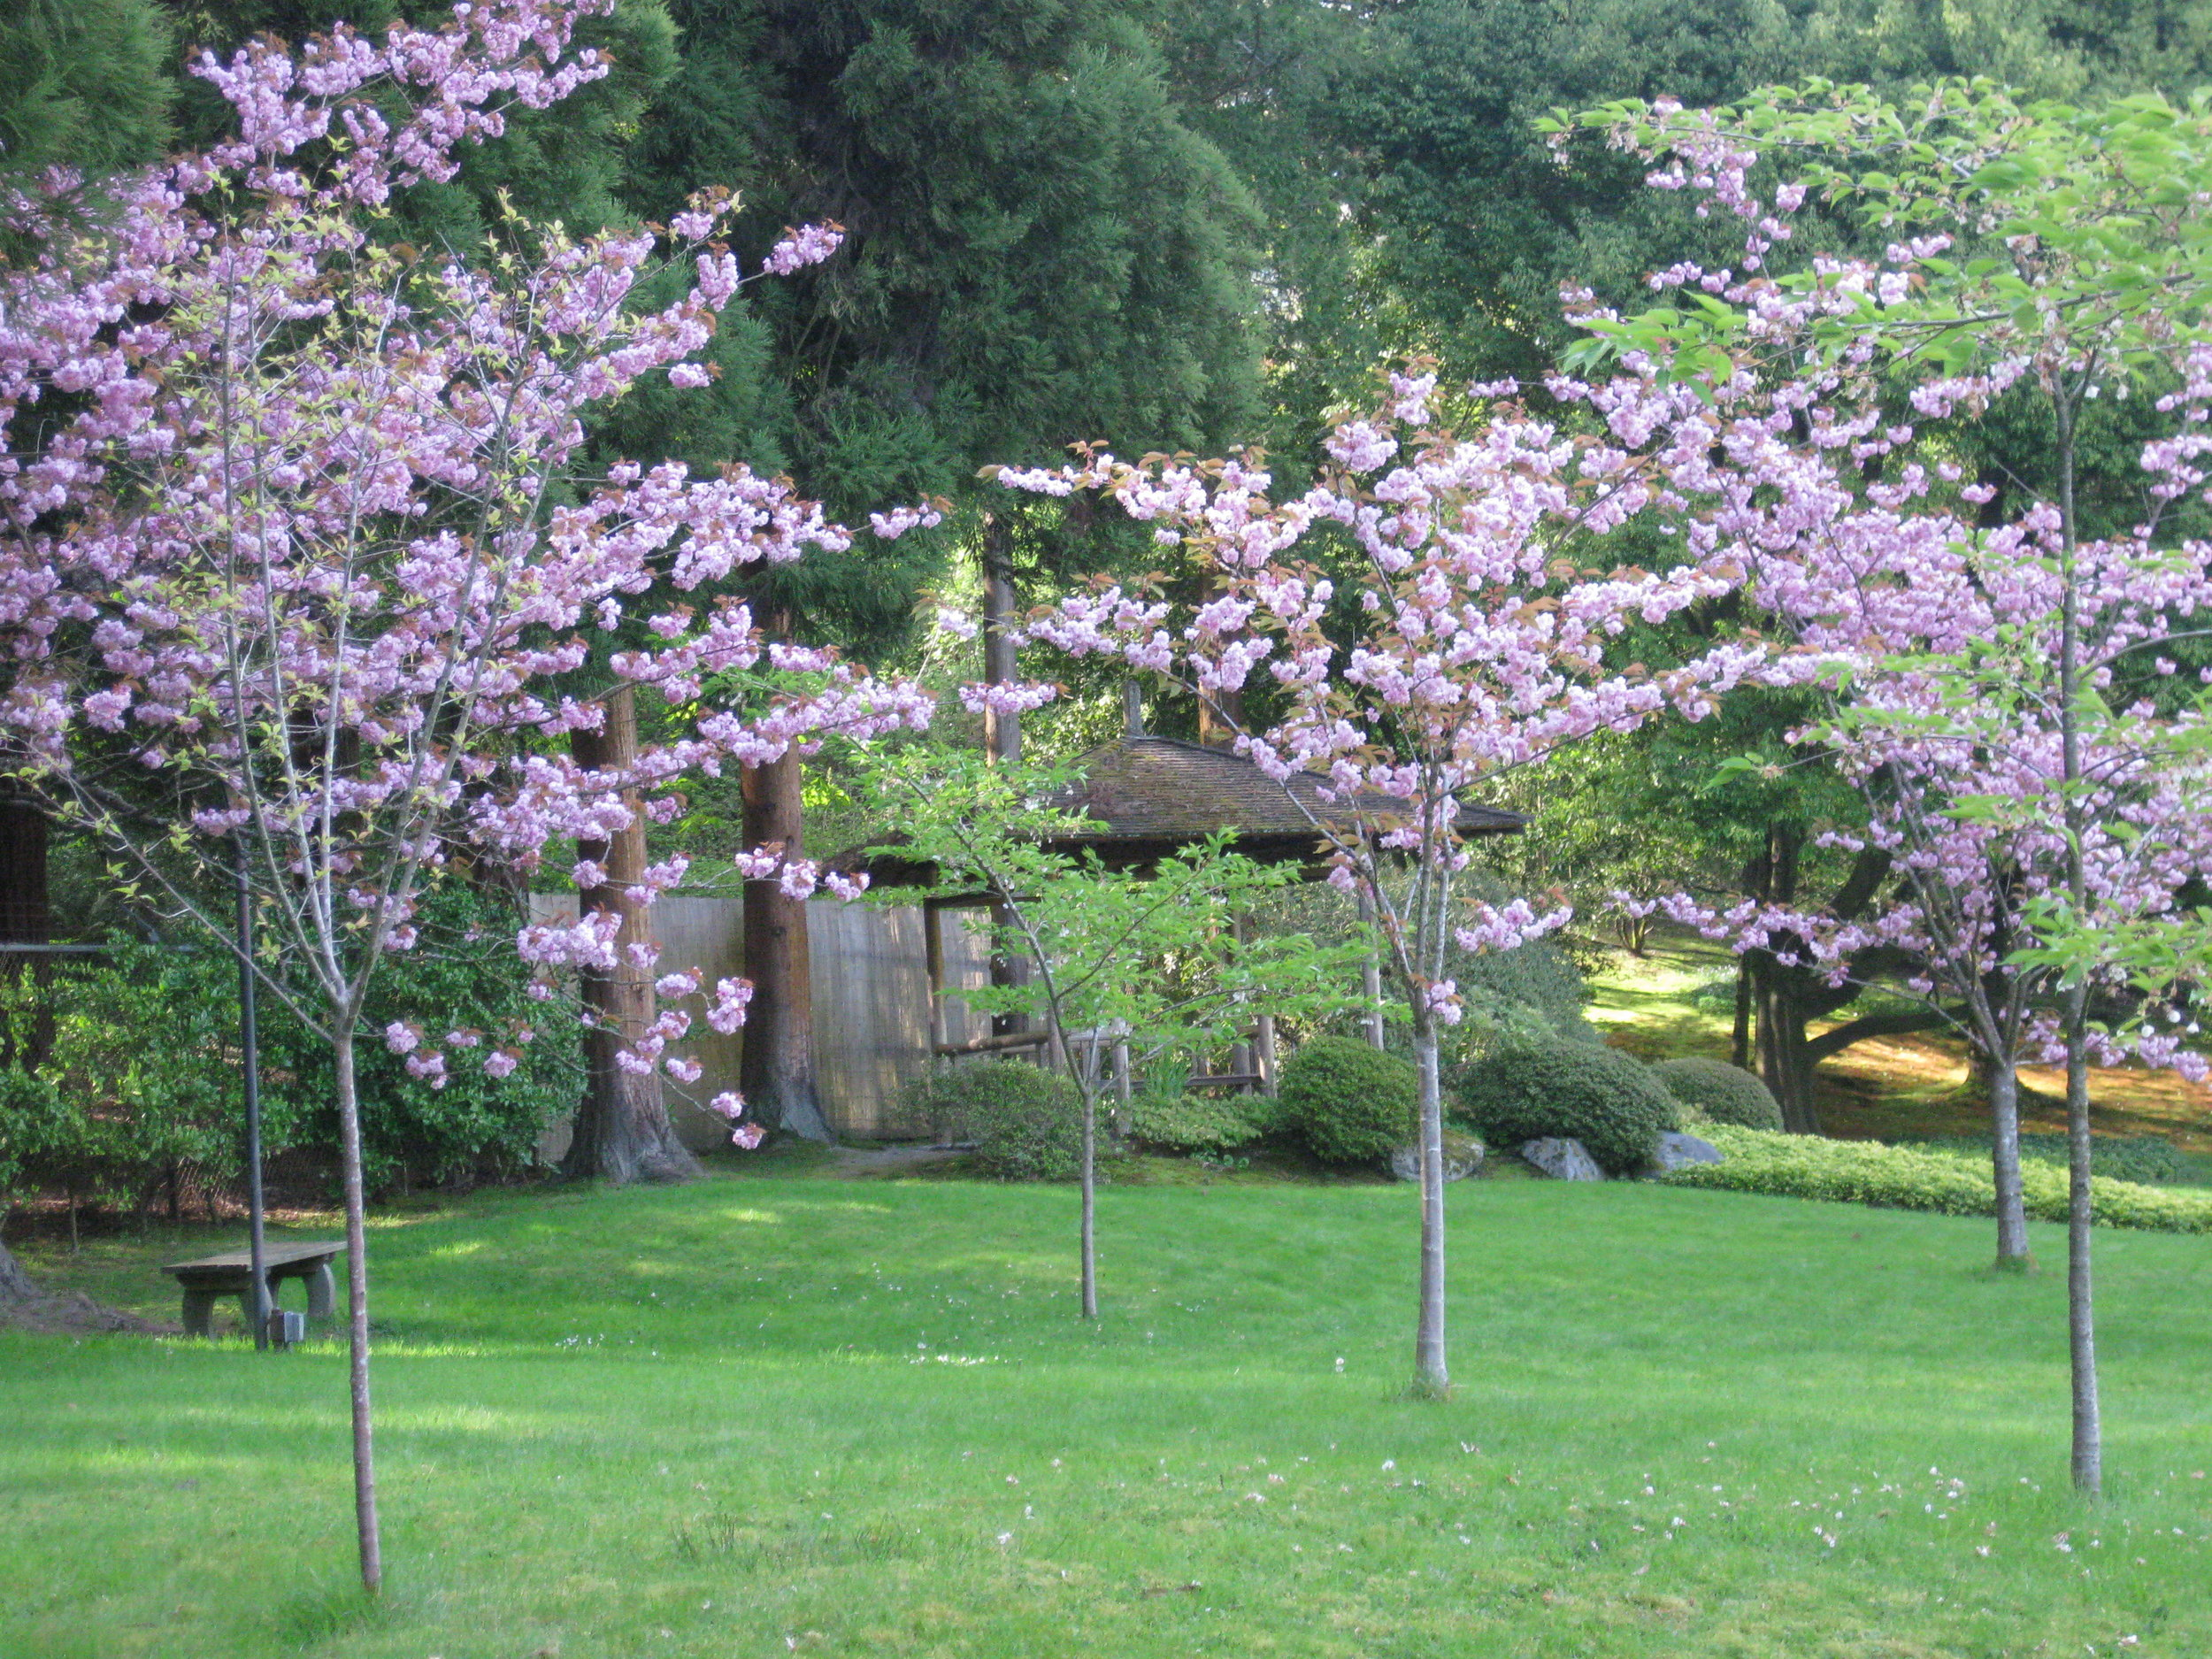 'Kwanzan' flowering cherry (photo by Aleks Monk, 2013)